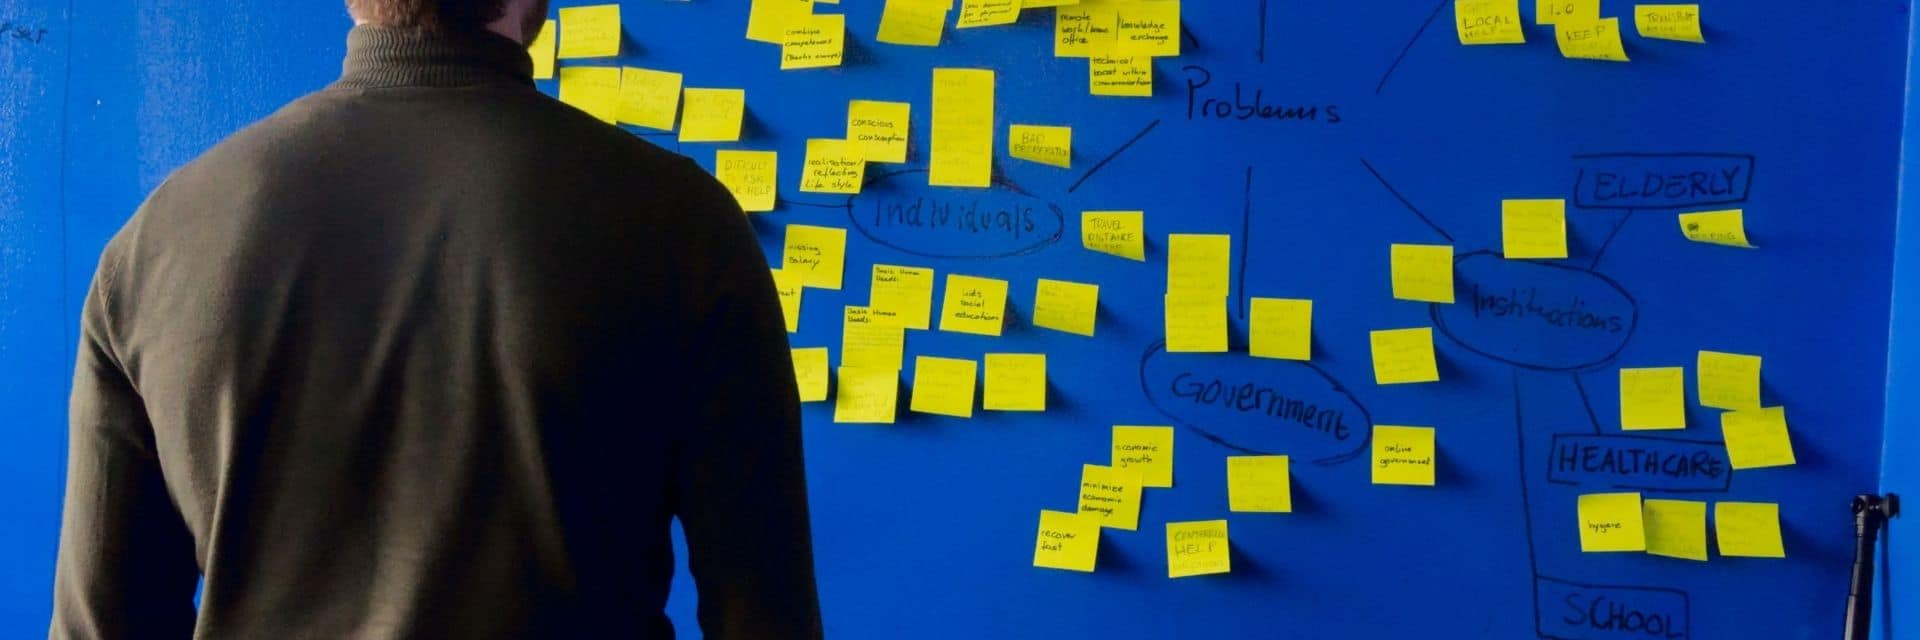 A board filled with post-it notes from a brainstorming session